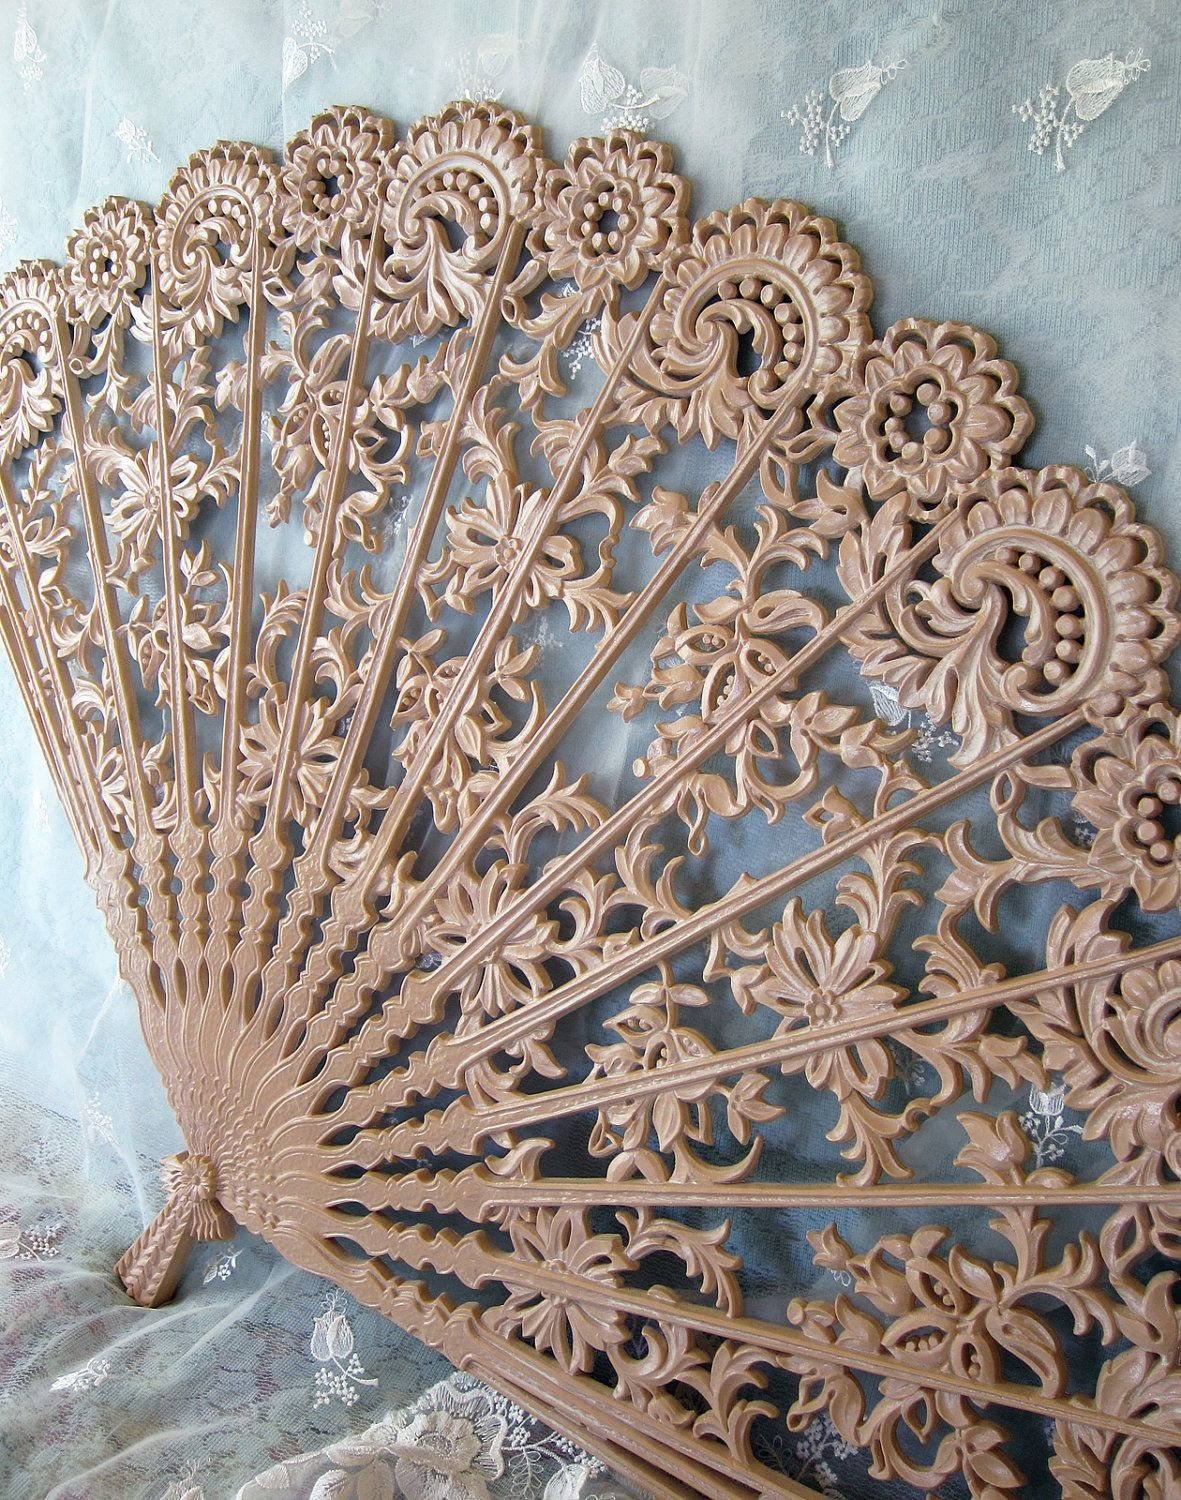 Vintage Burwood Wall Fan Pink Ornate Decor Hanging 35 00 Via Etsy